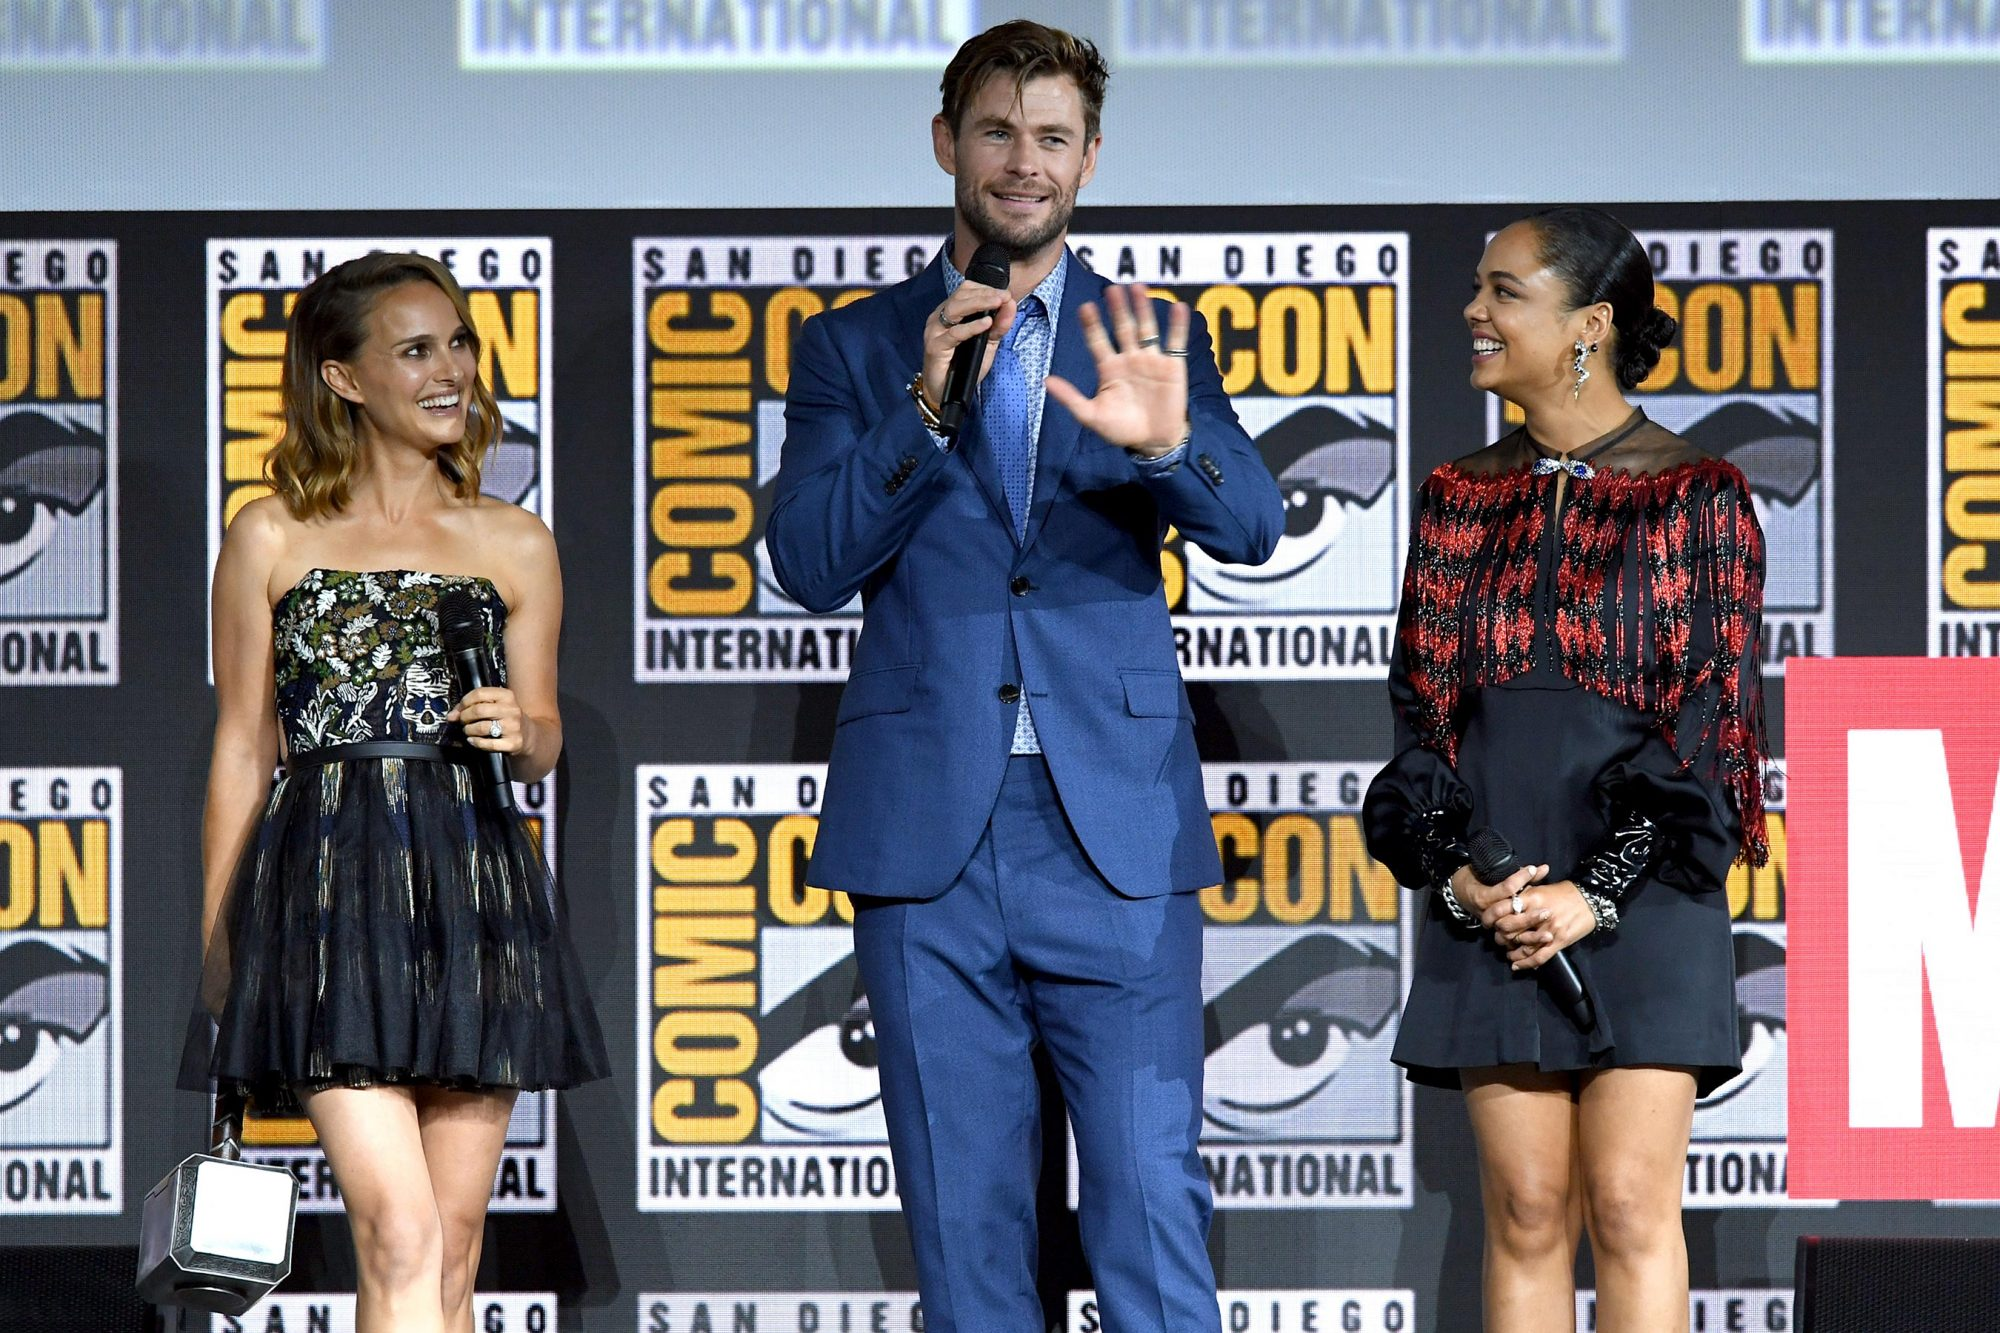 Natalie Portman, Chris Hemsworth and Tessa Thompson